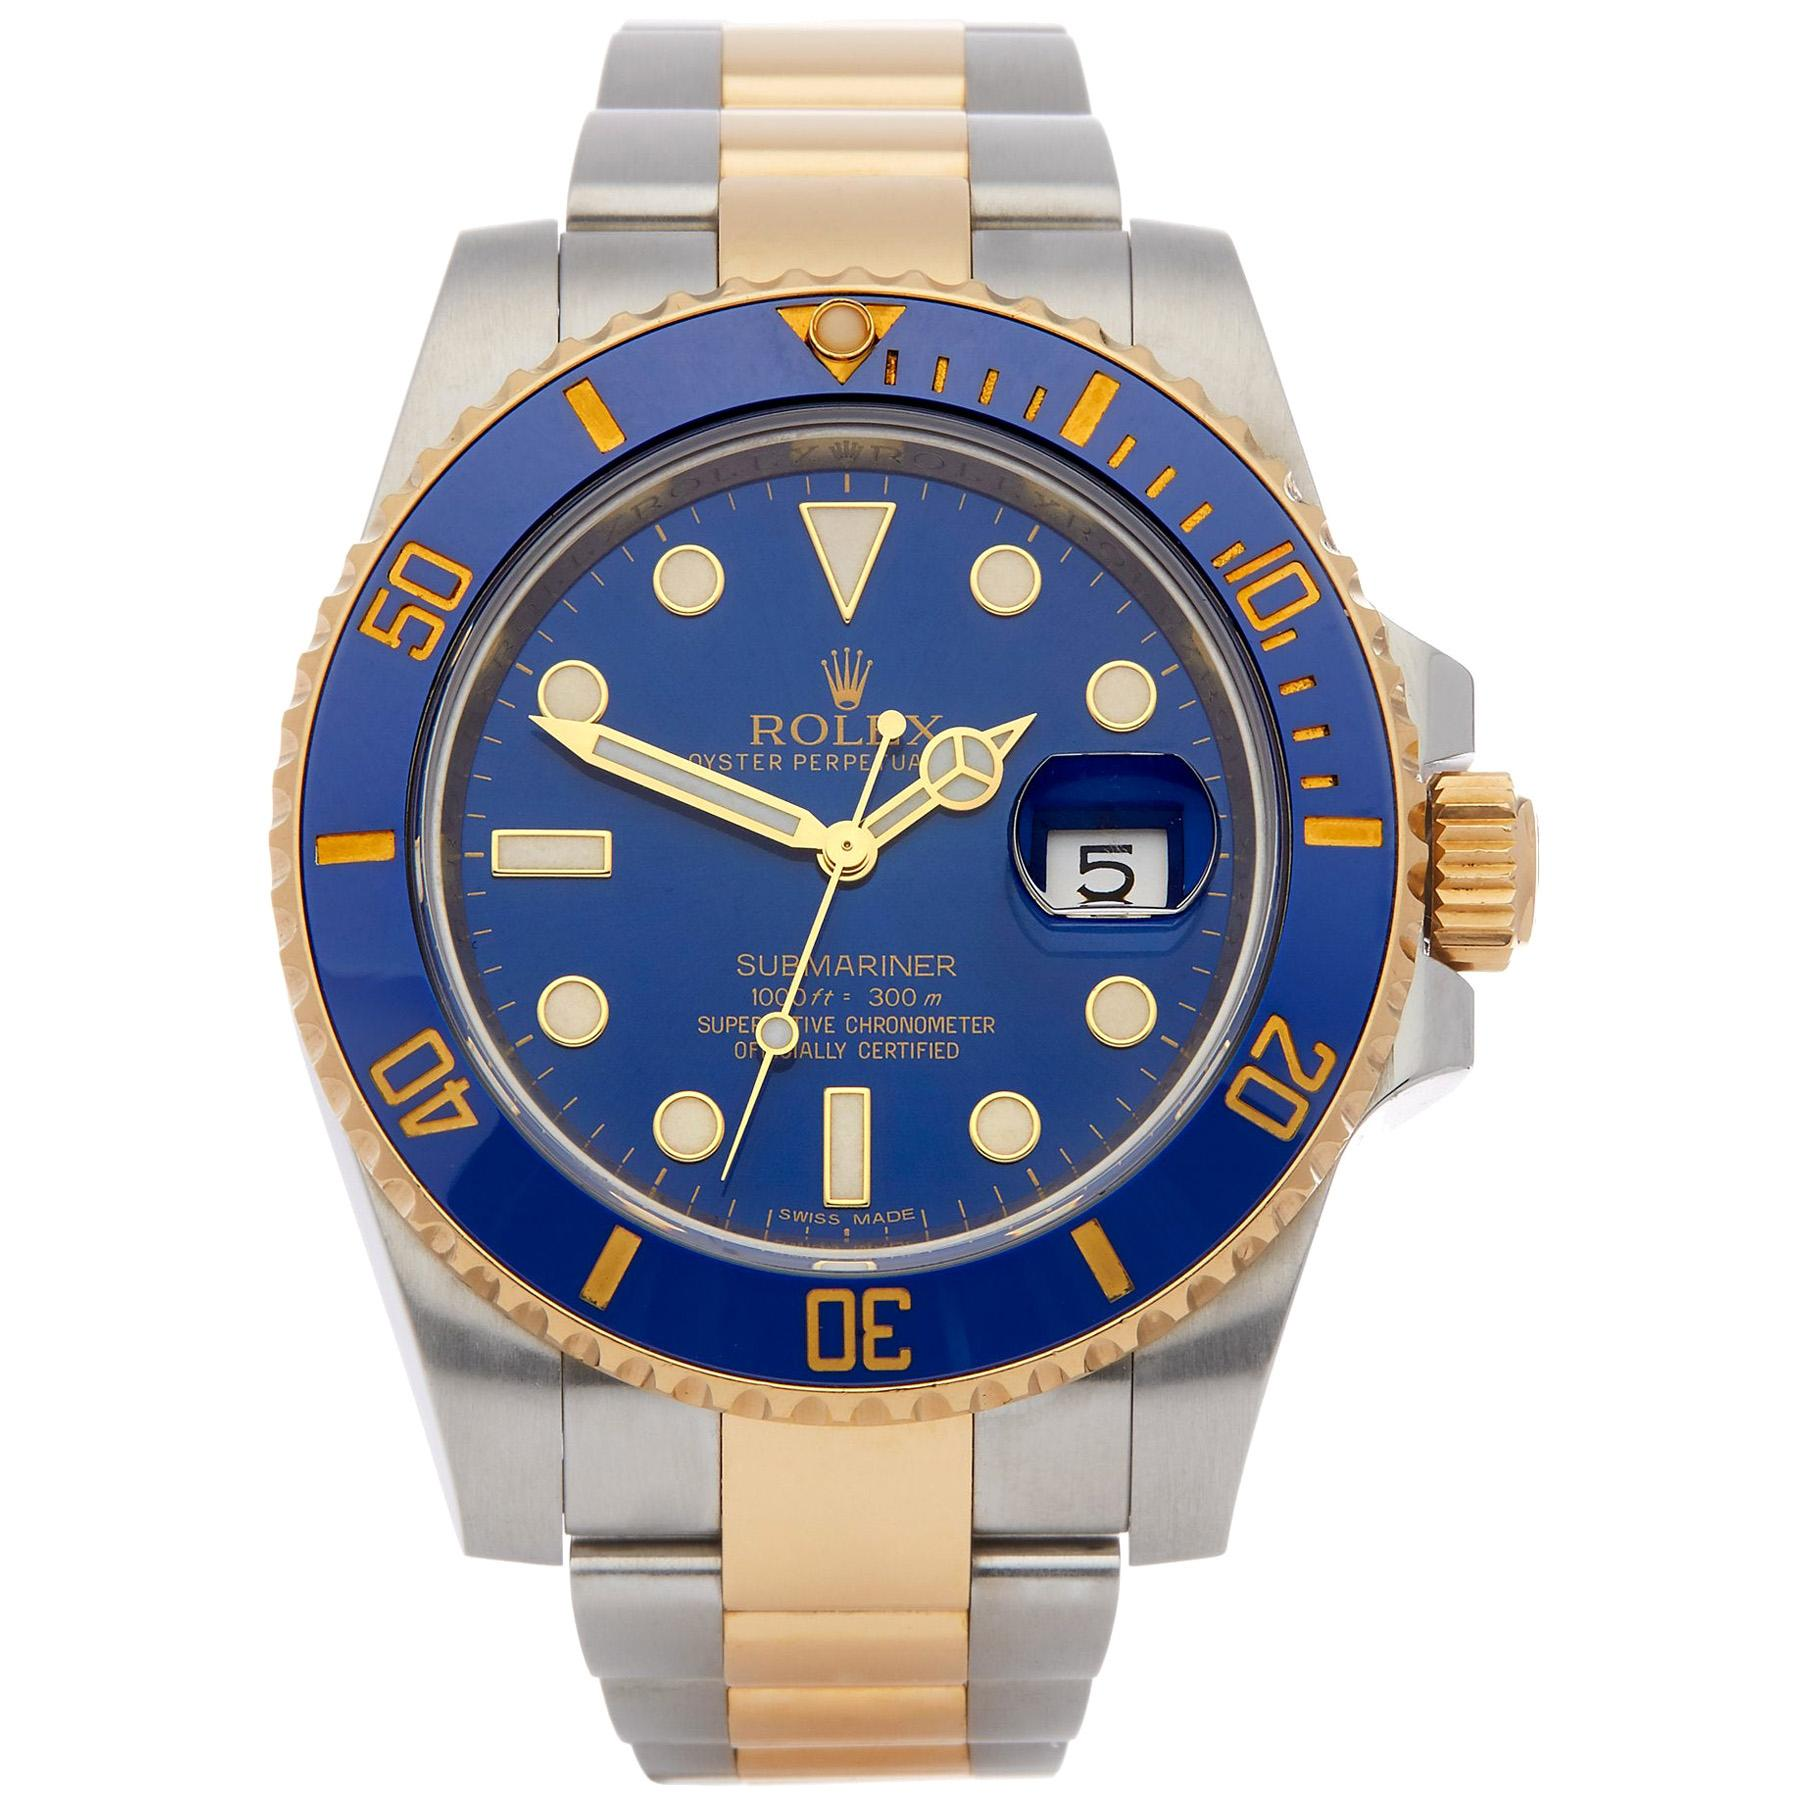 Rolex Submariner Date 116613LB Men's Stainless Steel and Yellow Gold Watch